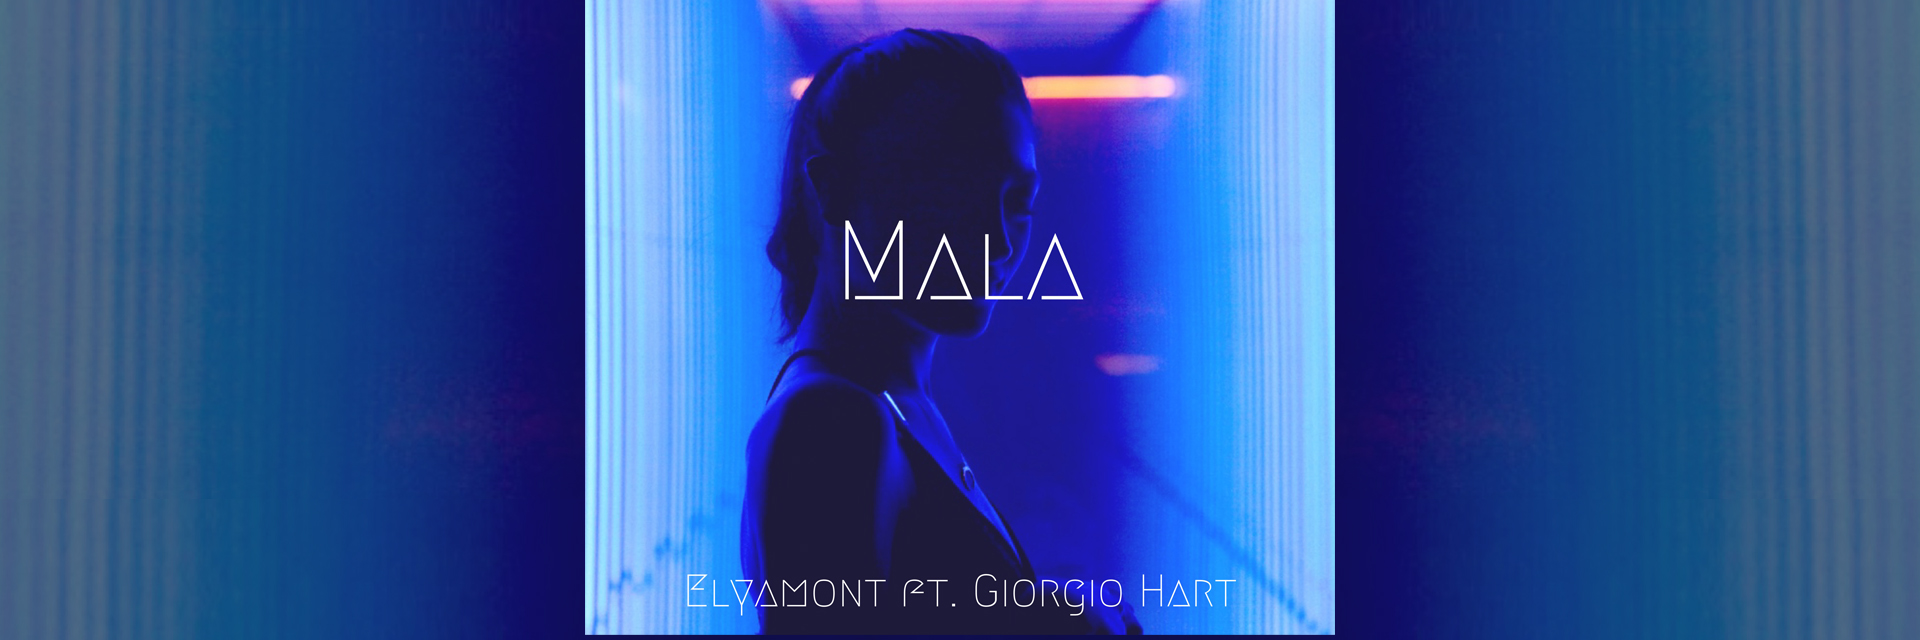 """Invest in the track """"Mala"""" from Elyamont and earn royalties for up to 70 years!"""